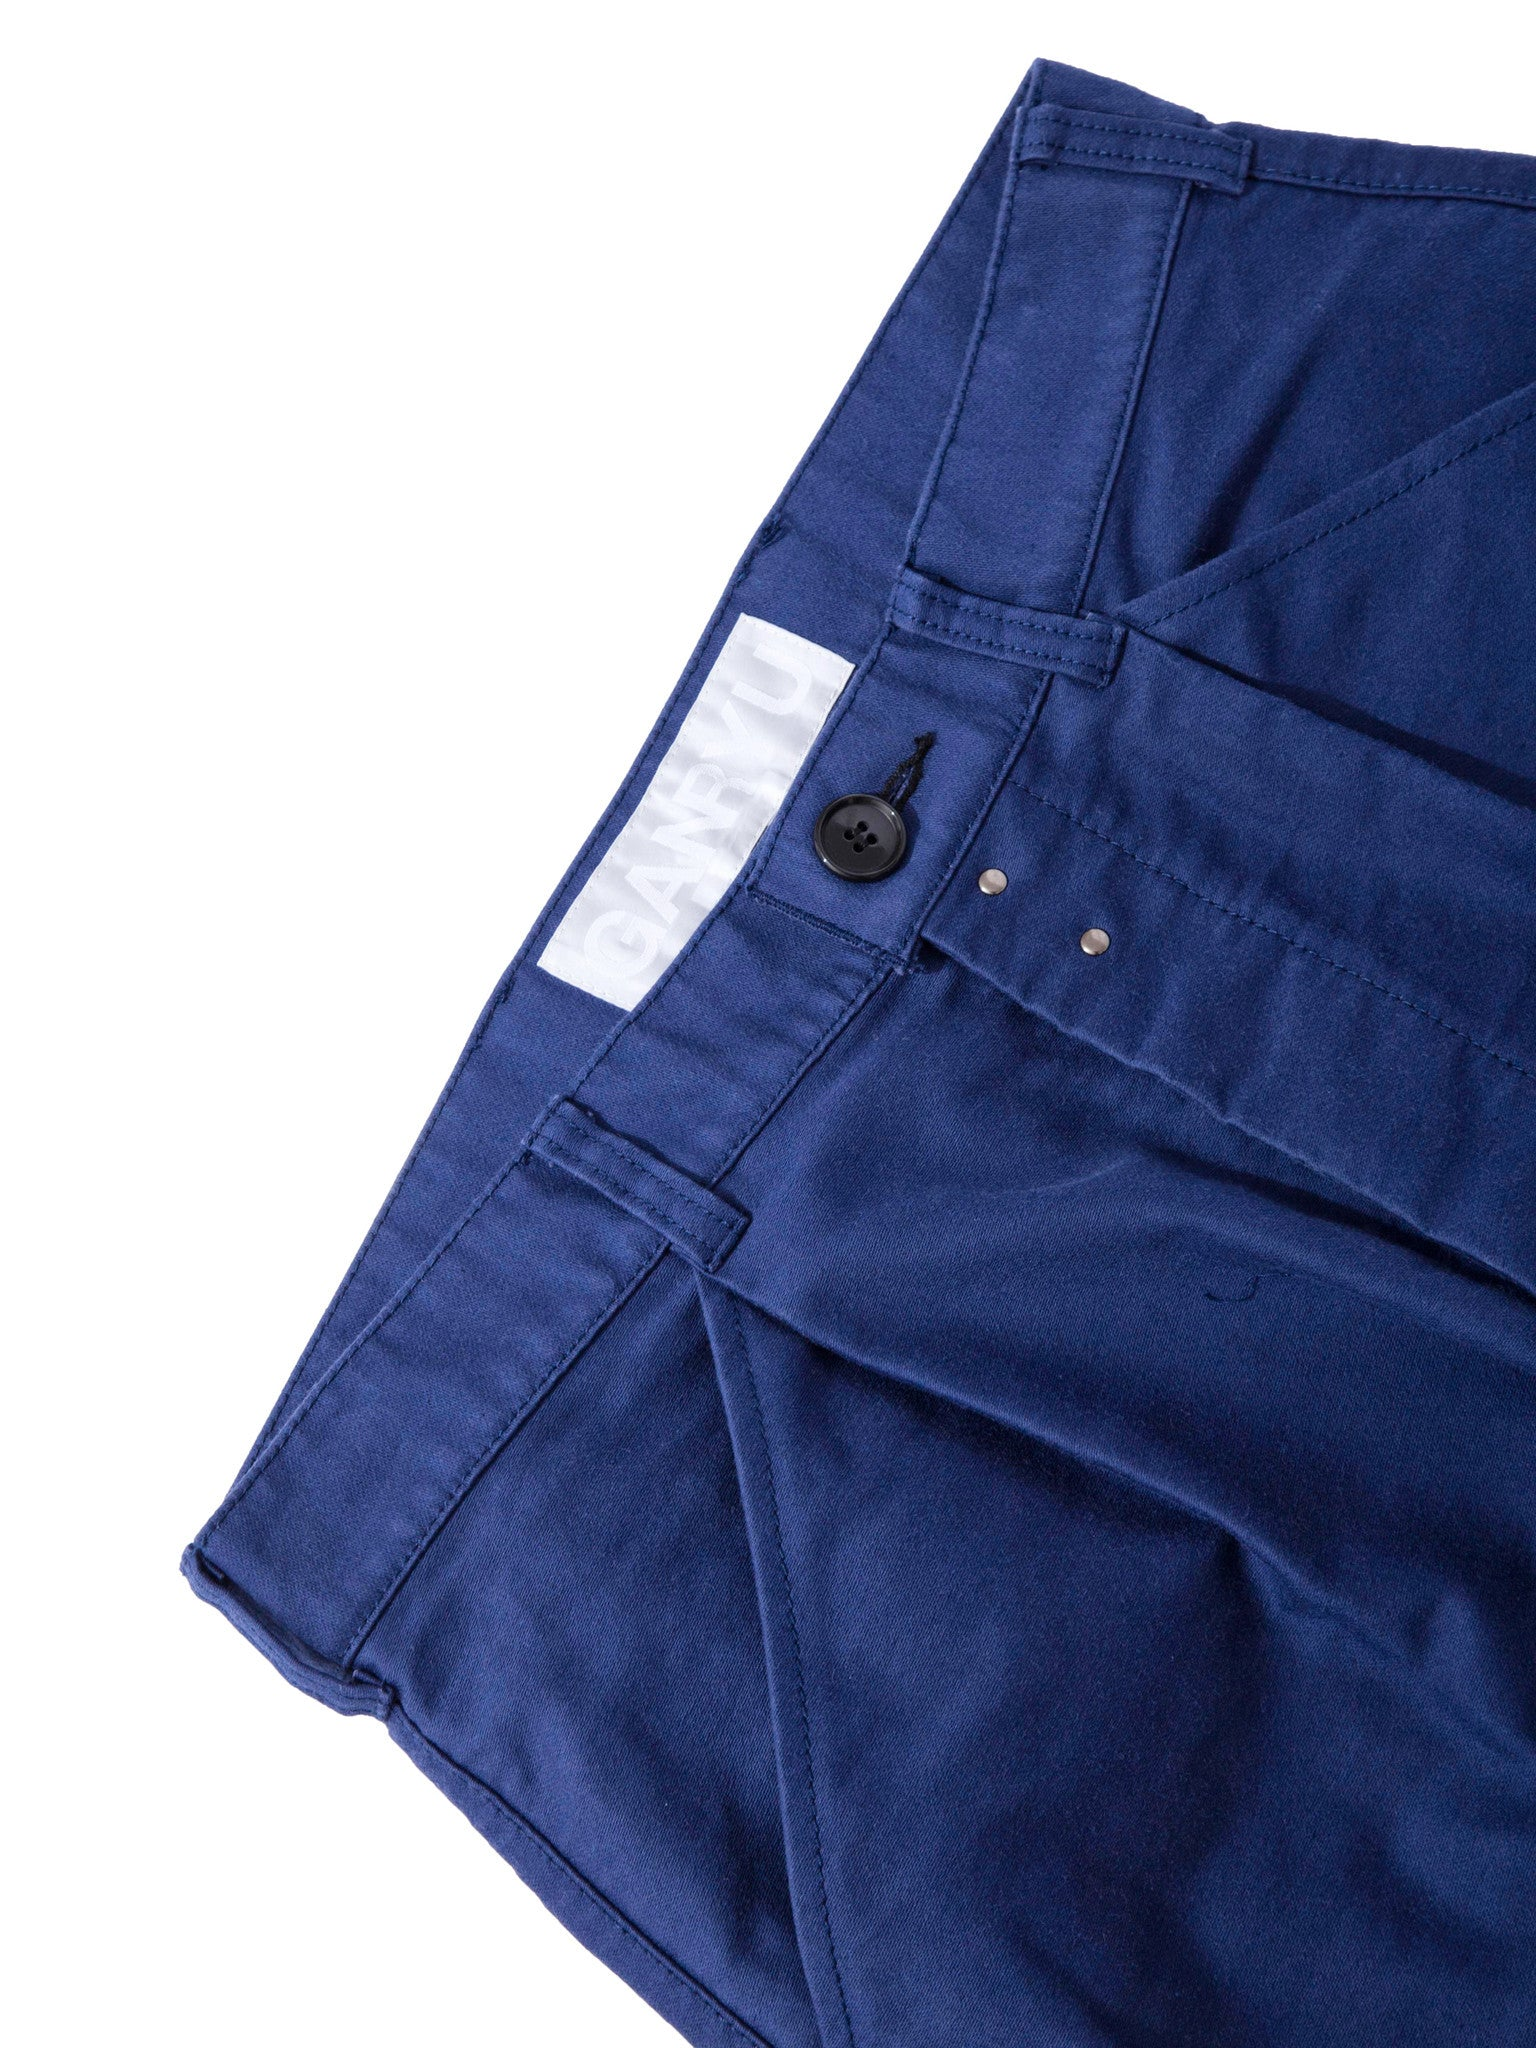 Navy Work Trousers 6